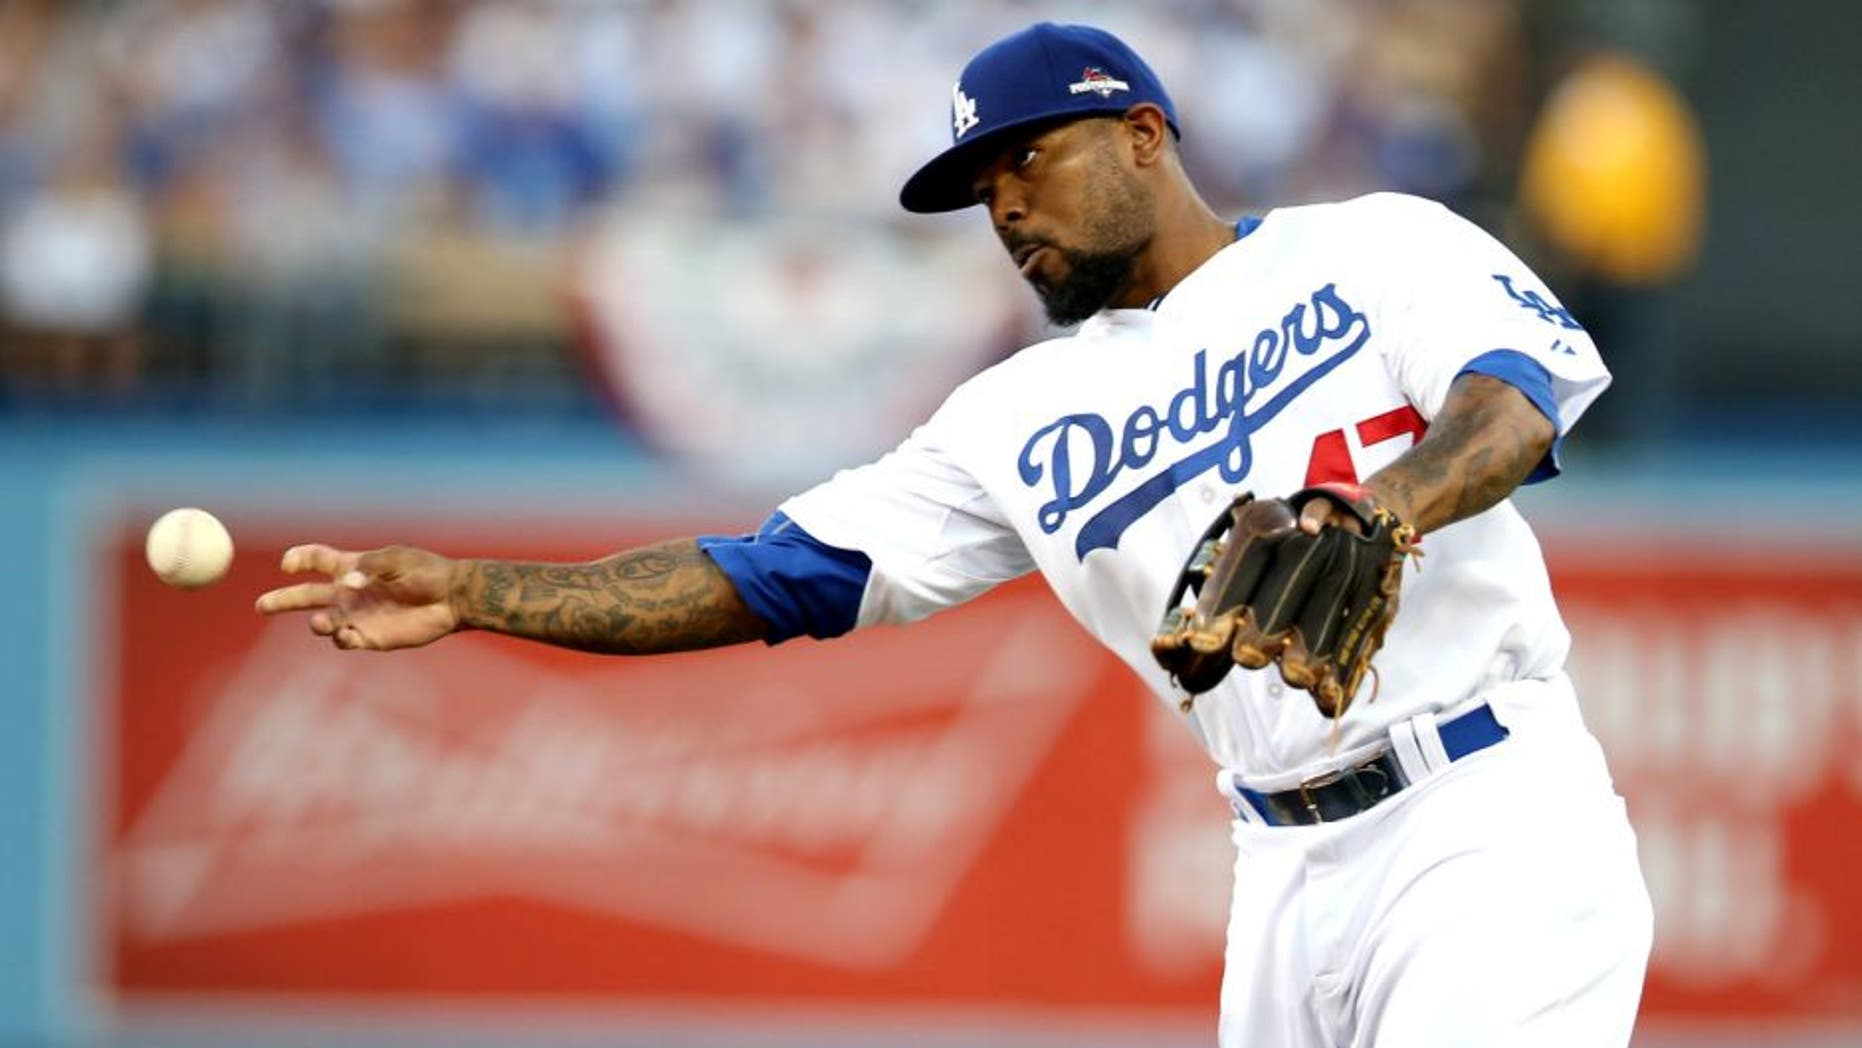 LOS ANGELES, CA - OCTOBER 15: Howie Kendrick #47 of the Los Angeles Dodgers throws to first base during Game 5 of the NLDS against the New York Mets at Dodgers Stadium on Thursday, October 15, 2015 in Los Angeles, California. (Photo by Rob Leiter/MLB Photos via Getty Images)